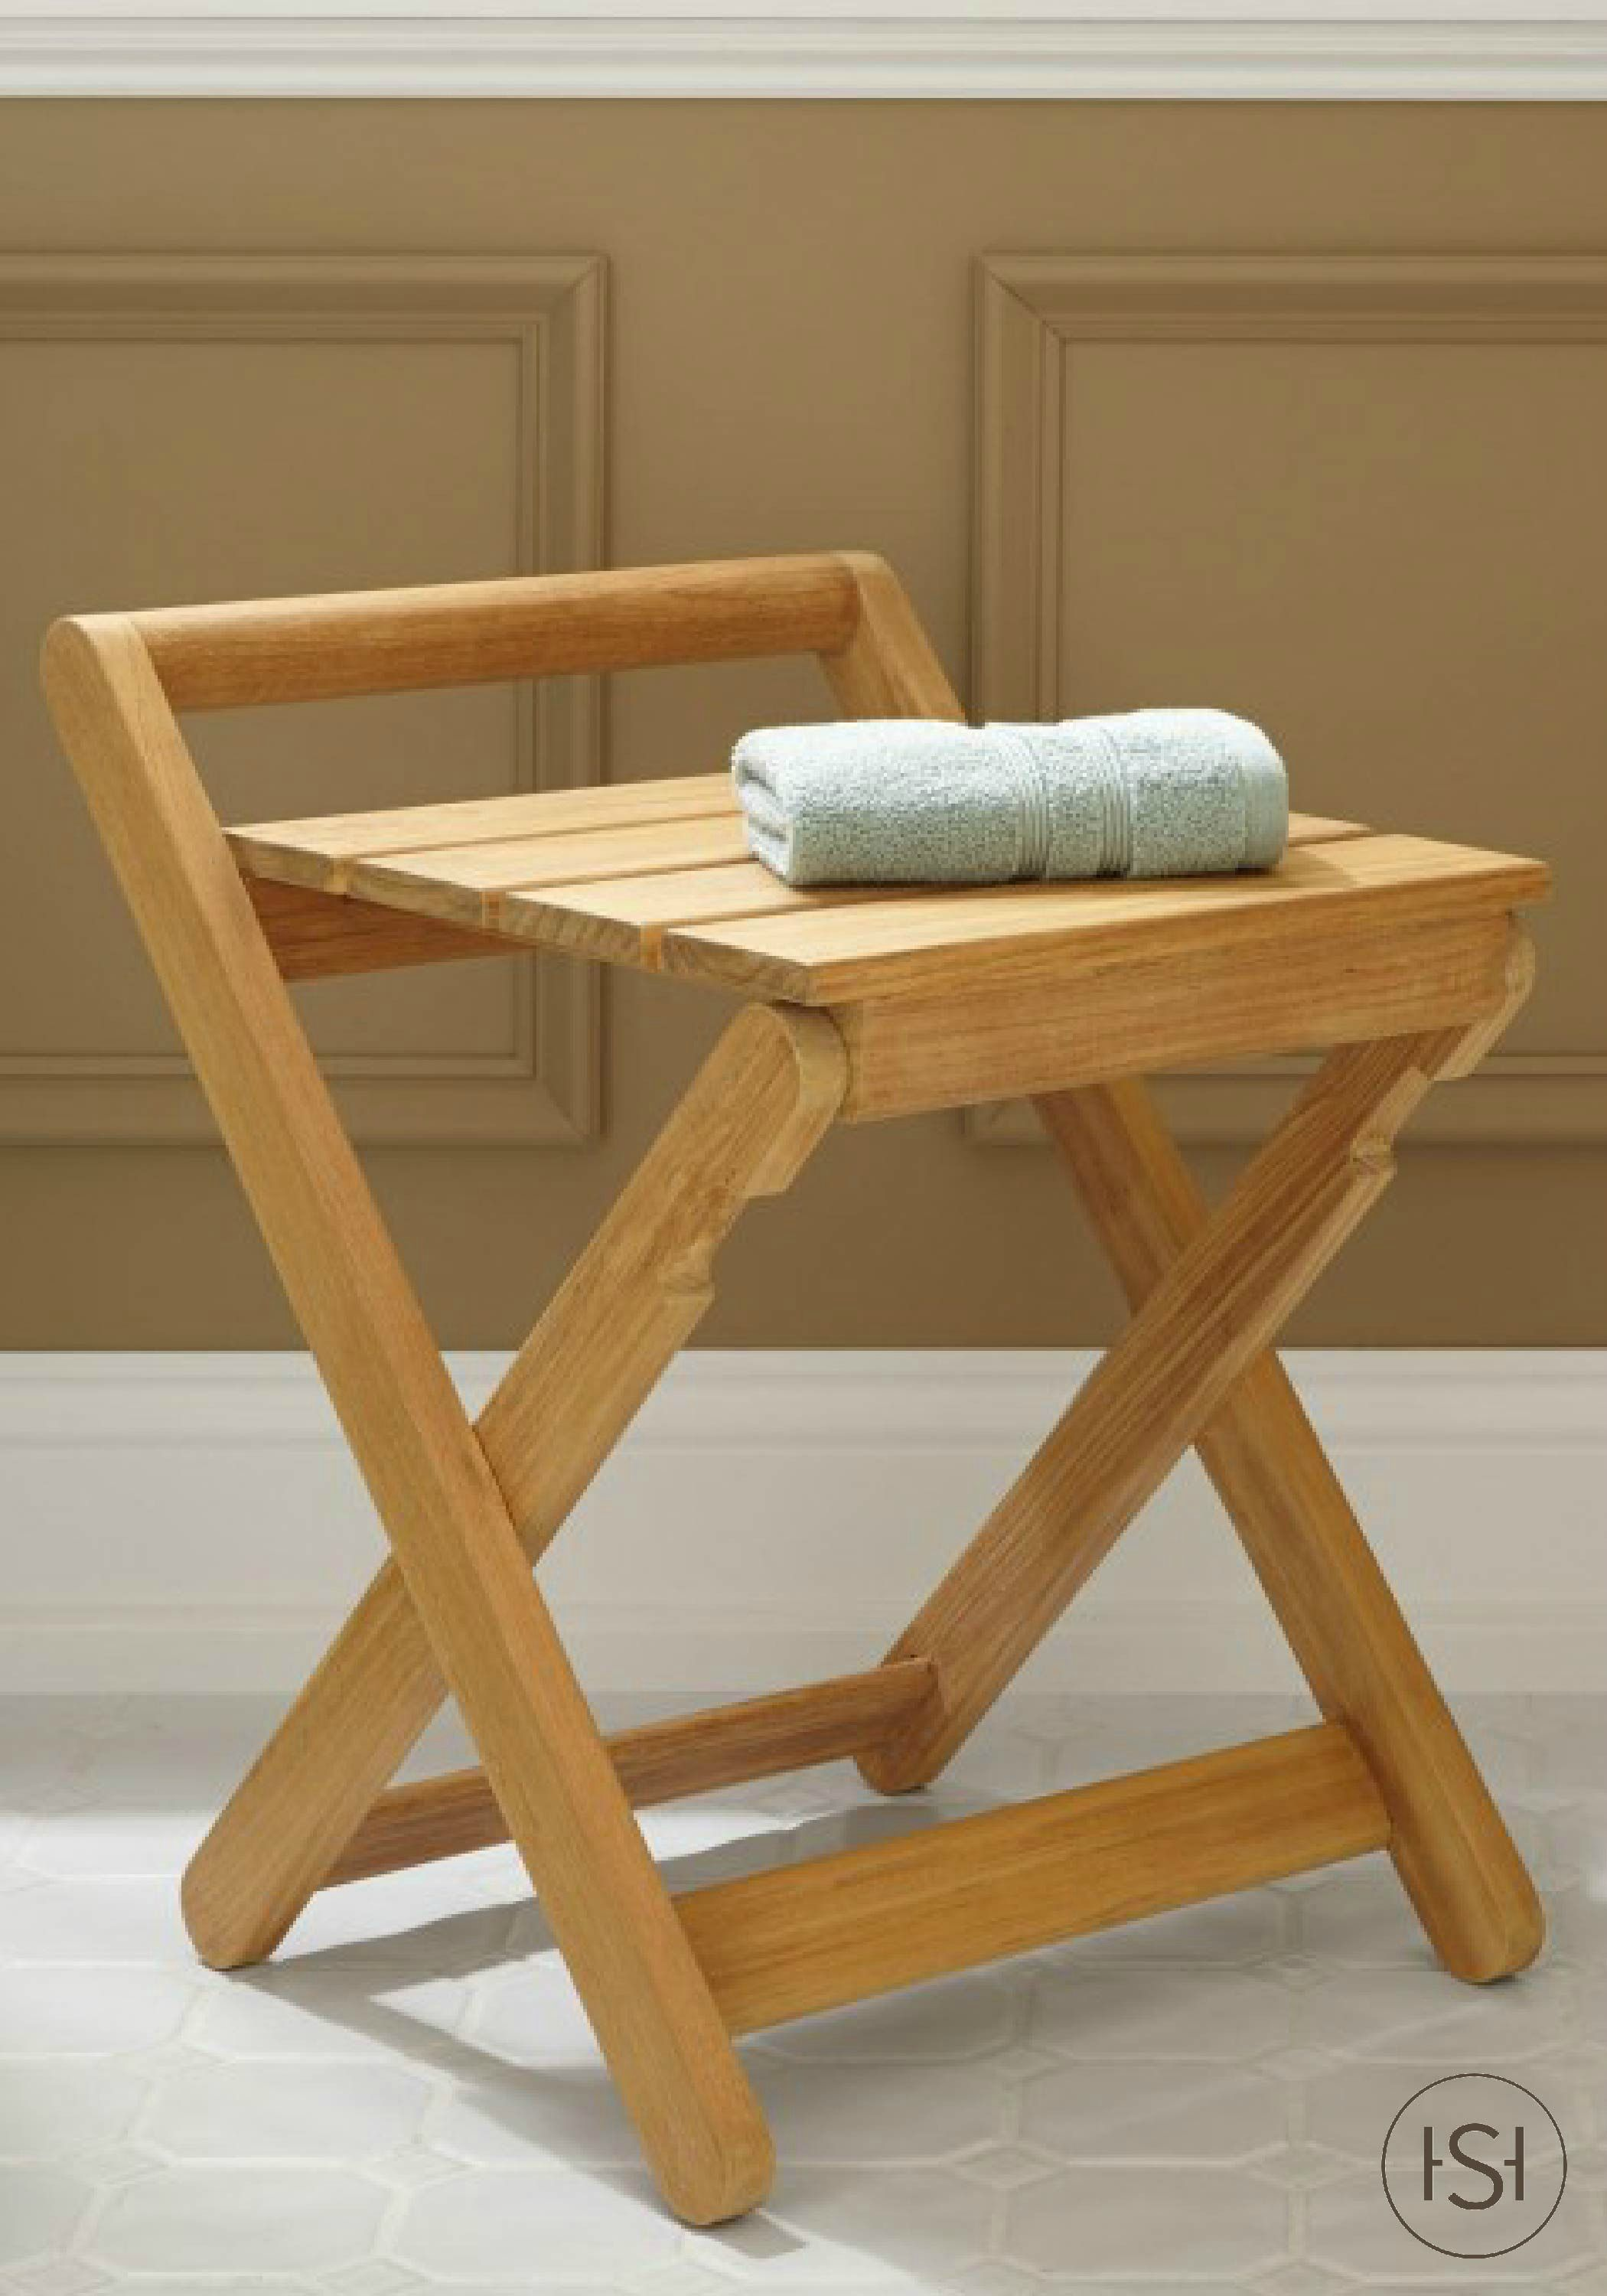 Dhara Teak Folding Shower Stool | Pinterest | Teak shower stool ...